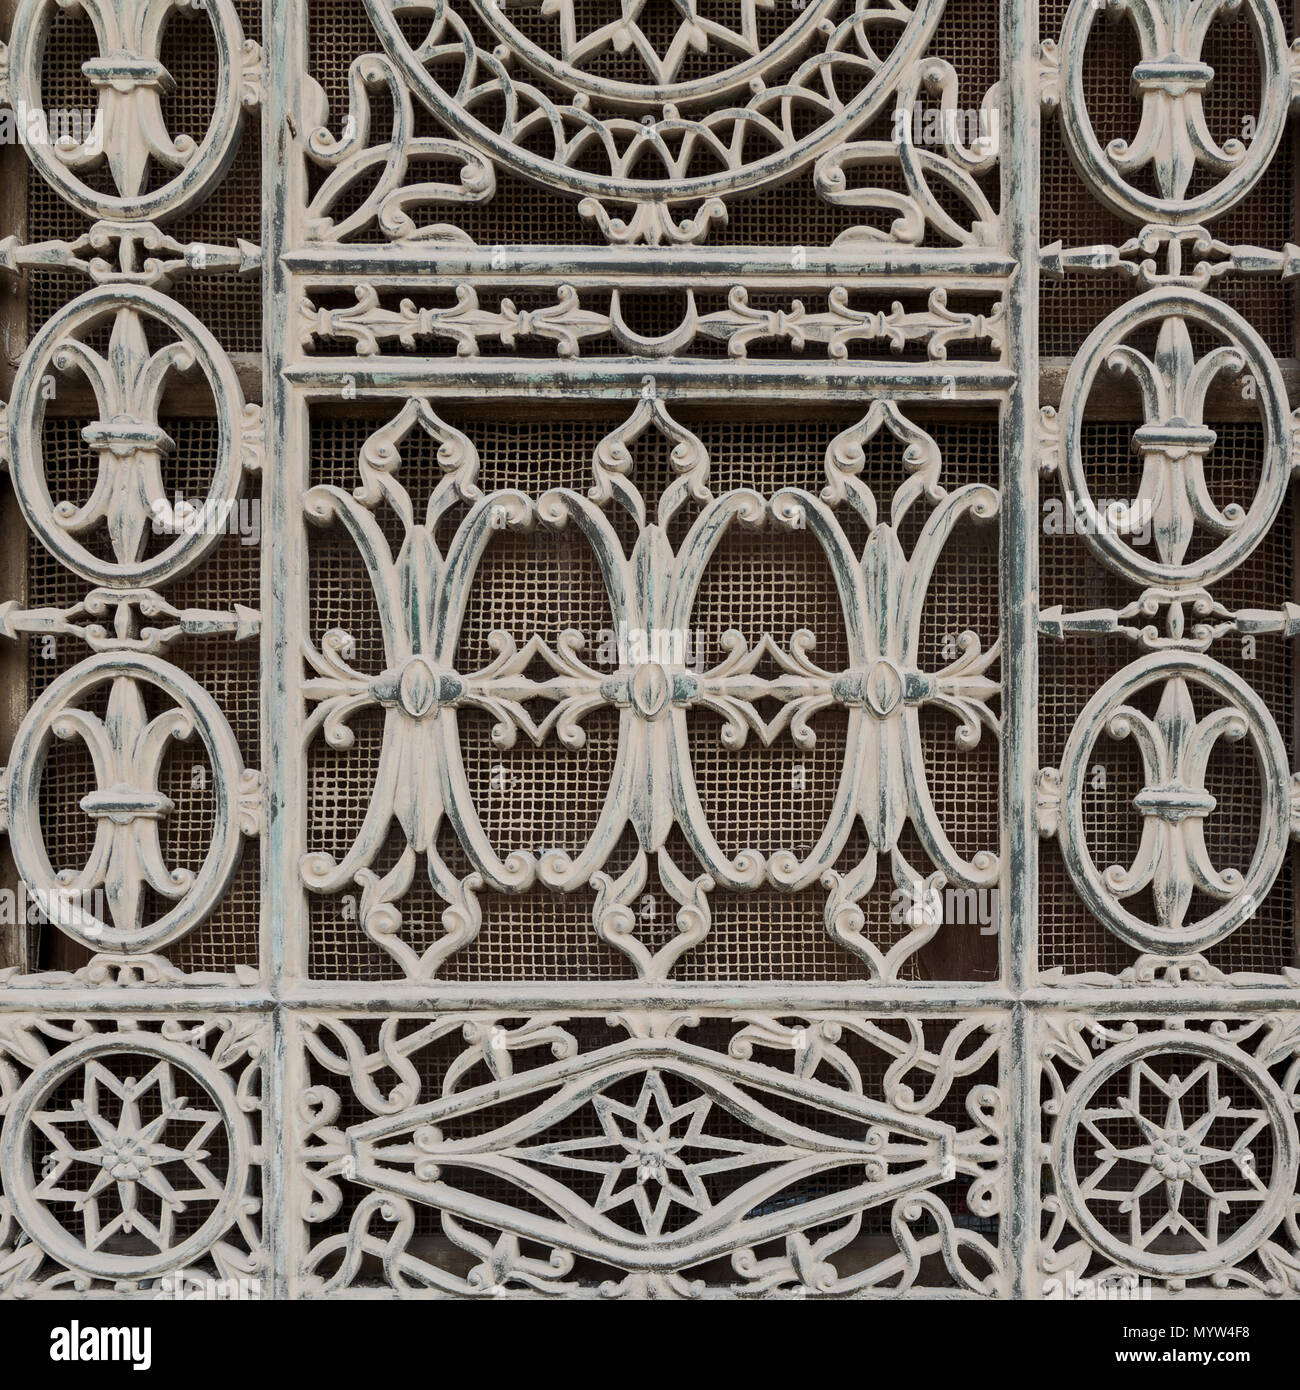 Grunge old window decorated with iron floral patterns, Mosque of Muhammad Ali, Cairo Citadel, Egypt - Stock Image